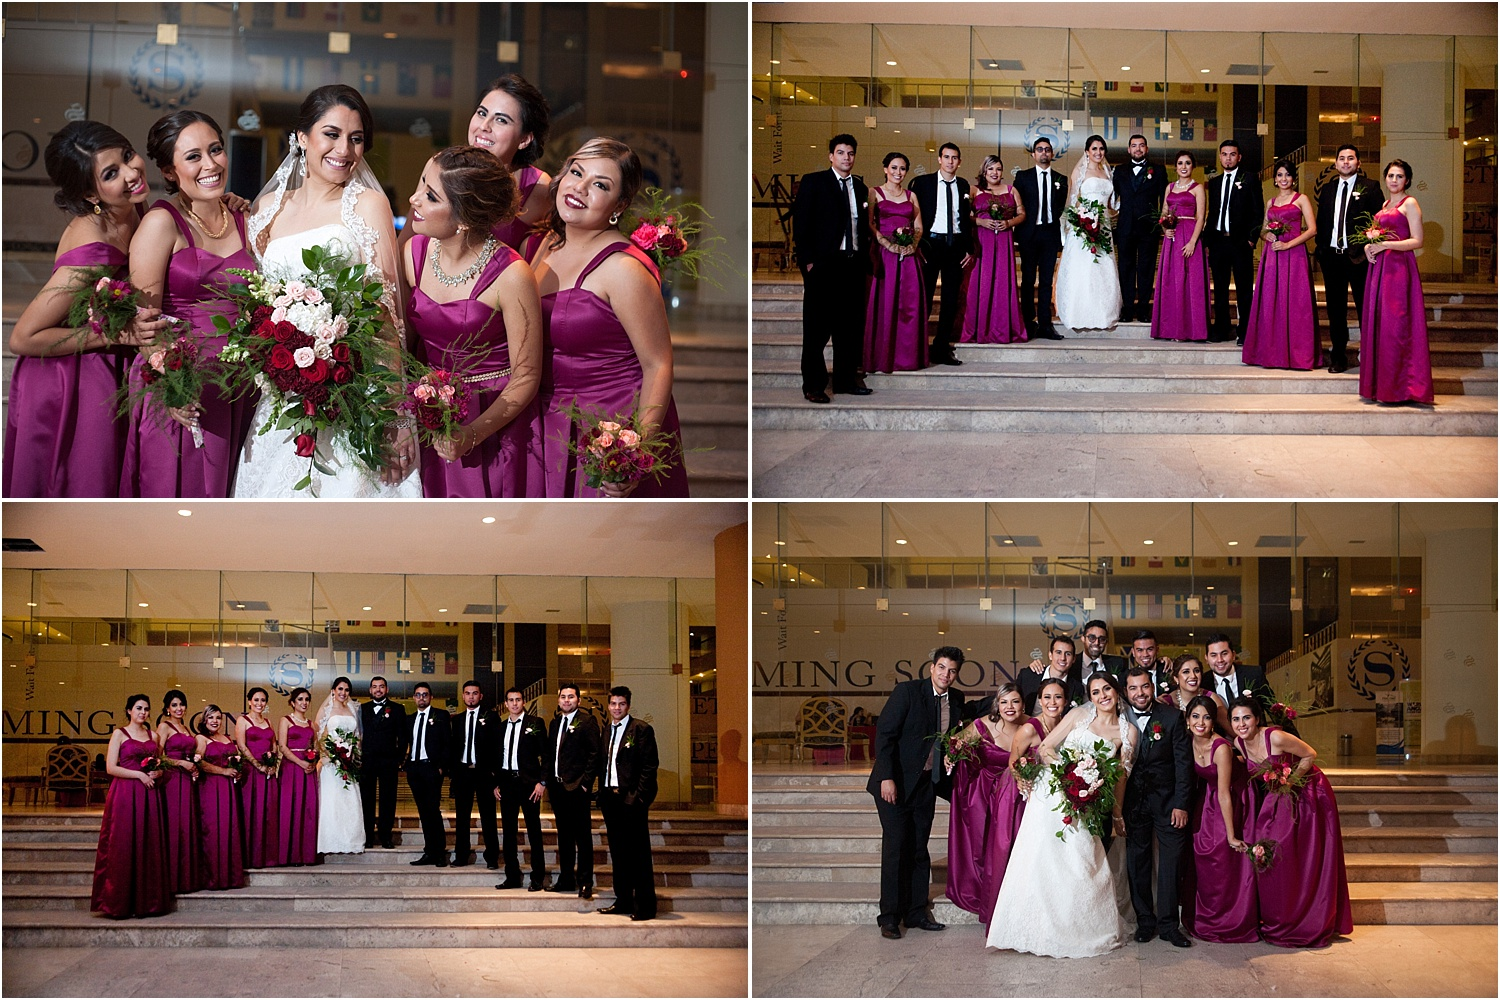 How to photograph family and bridal party portraits quickly at weddings 14